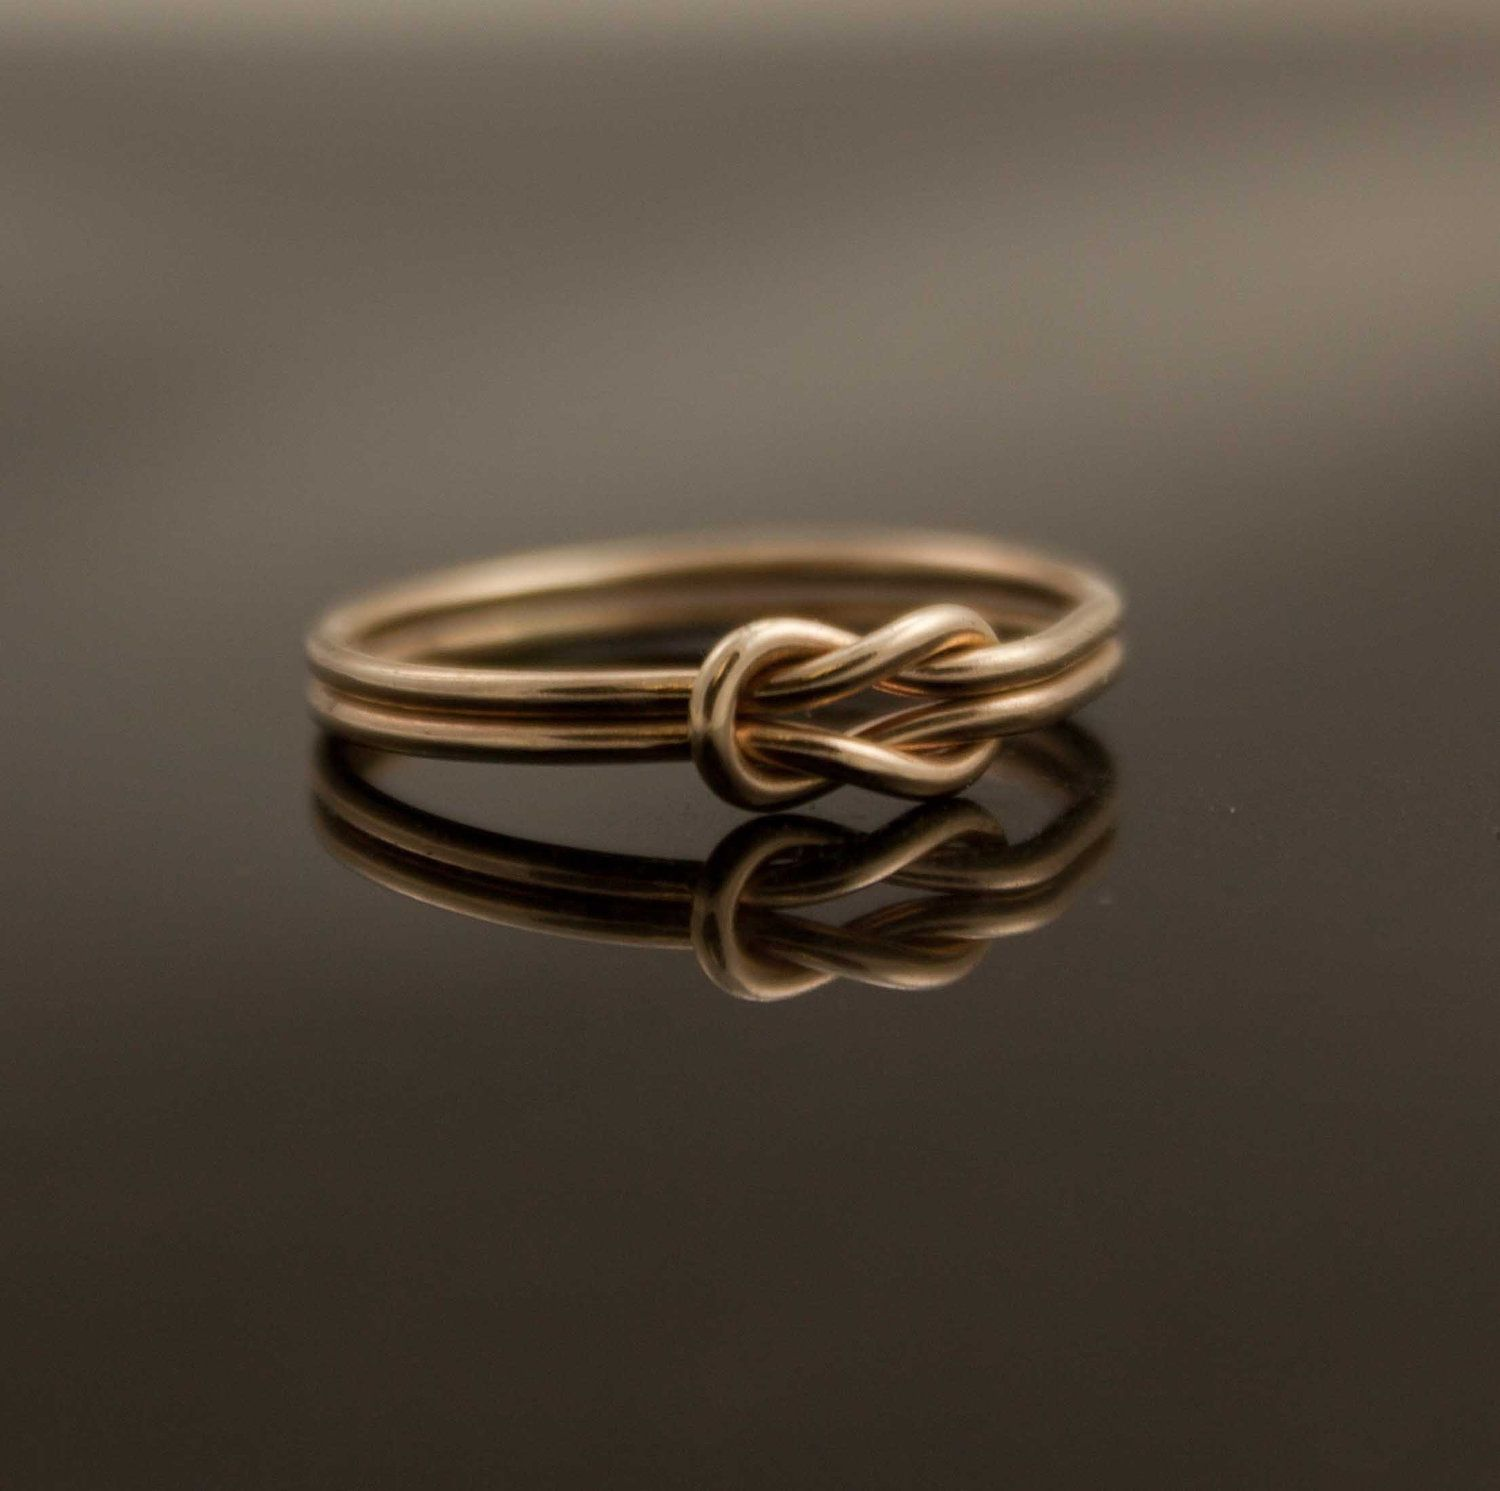 Solid 14k Gold Infinity Knot Ring Hug Ring Alternate Wedding Ring,  Engagement,mittment Promise